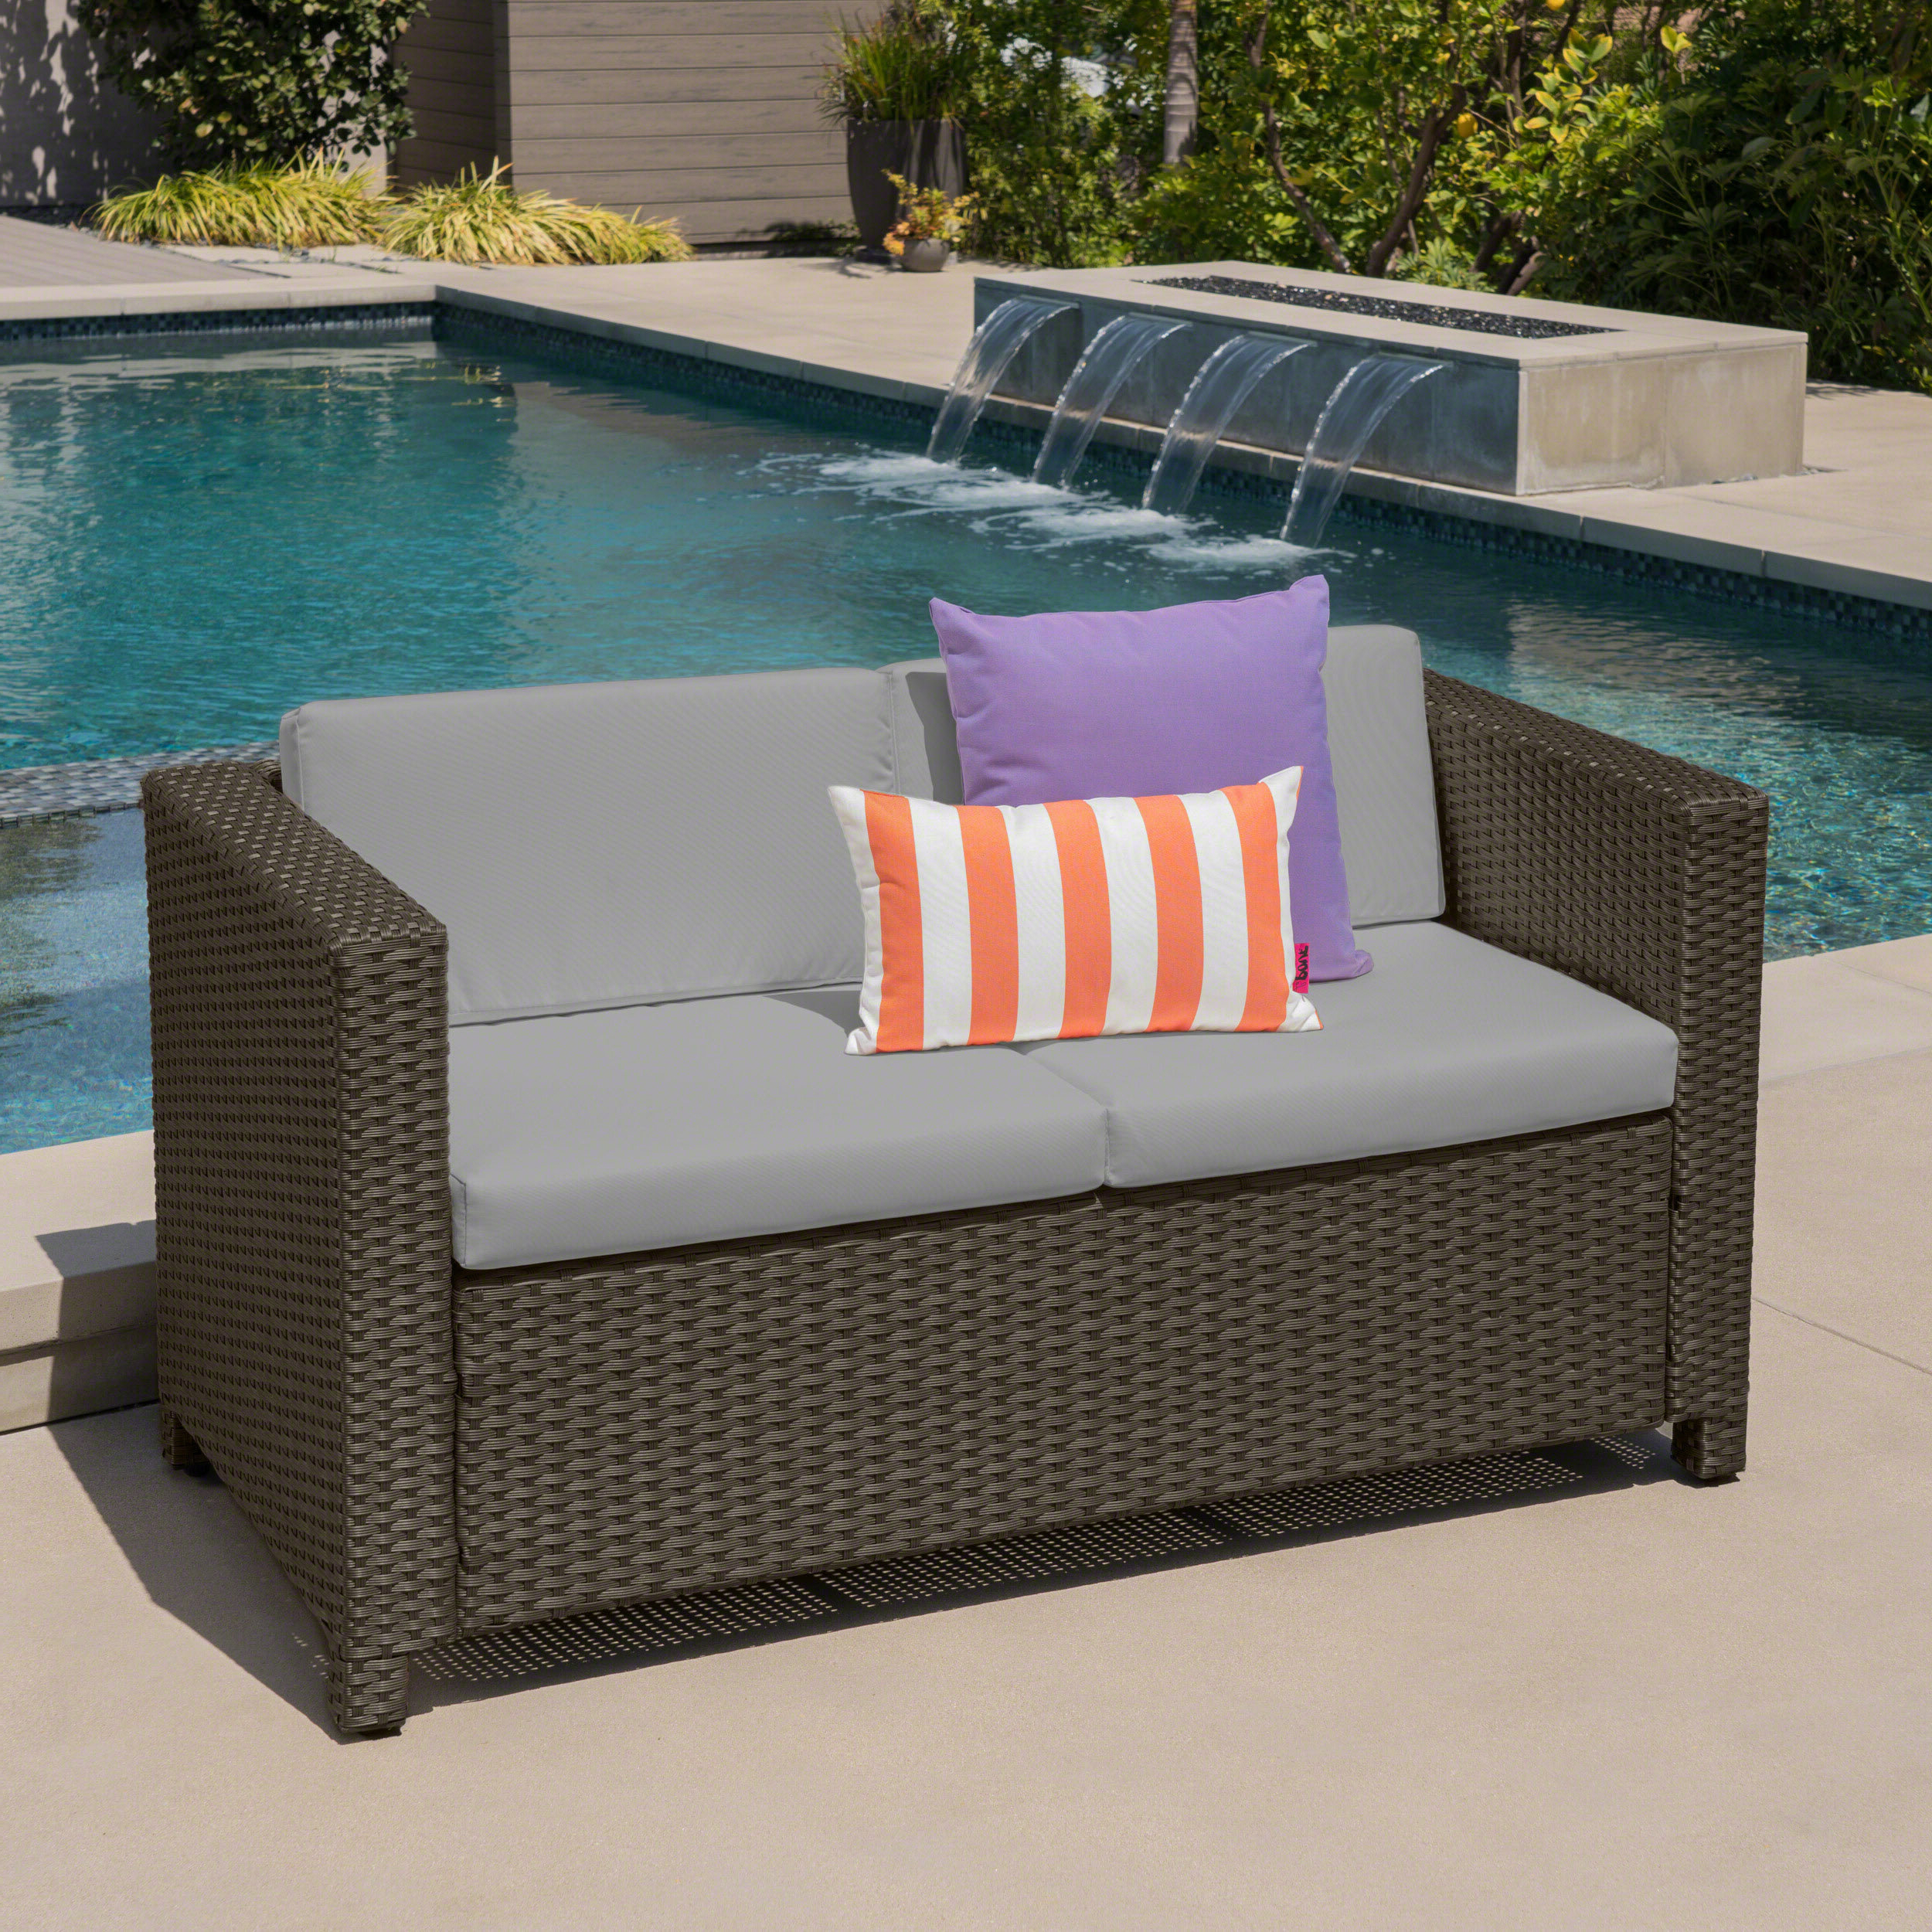 Most Current Furst Outdoor Loveseat With Cushions With Regard To Behling Canopy Patio Daybeds With Cushions (View 21 of 25)